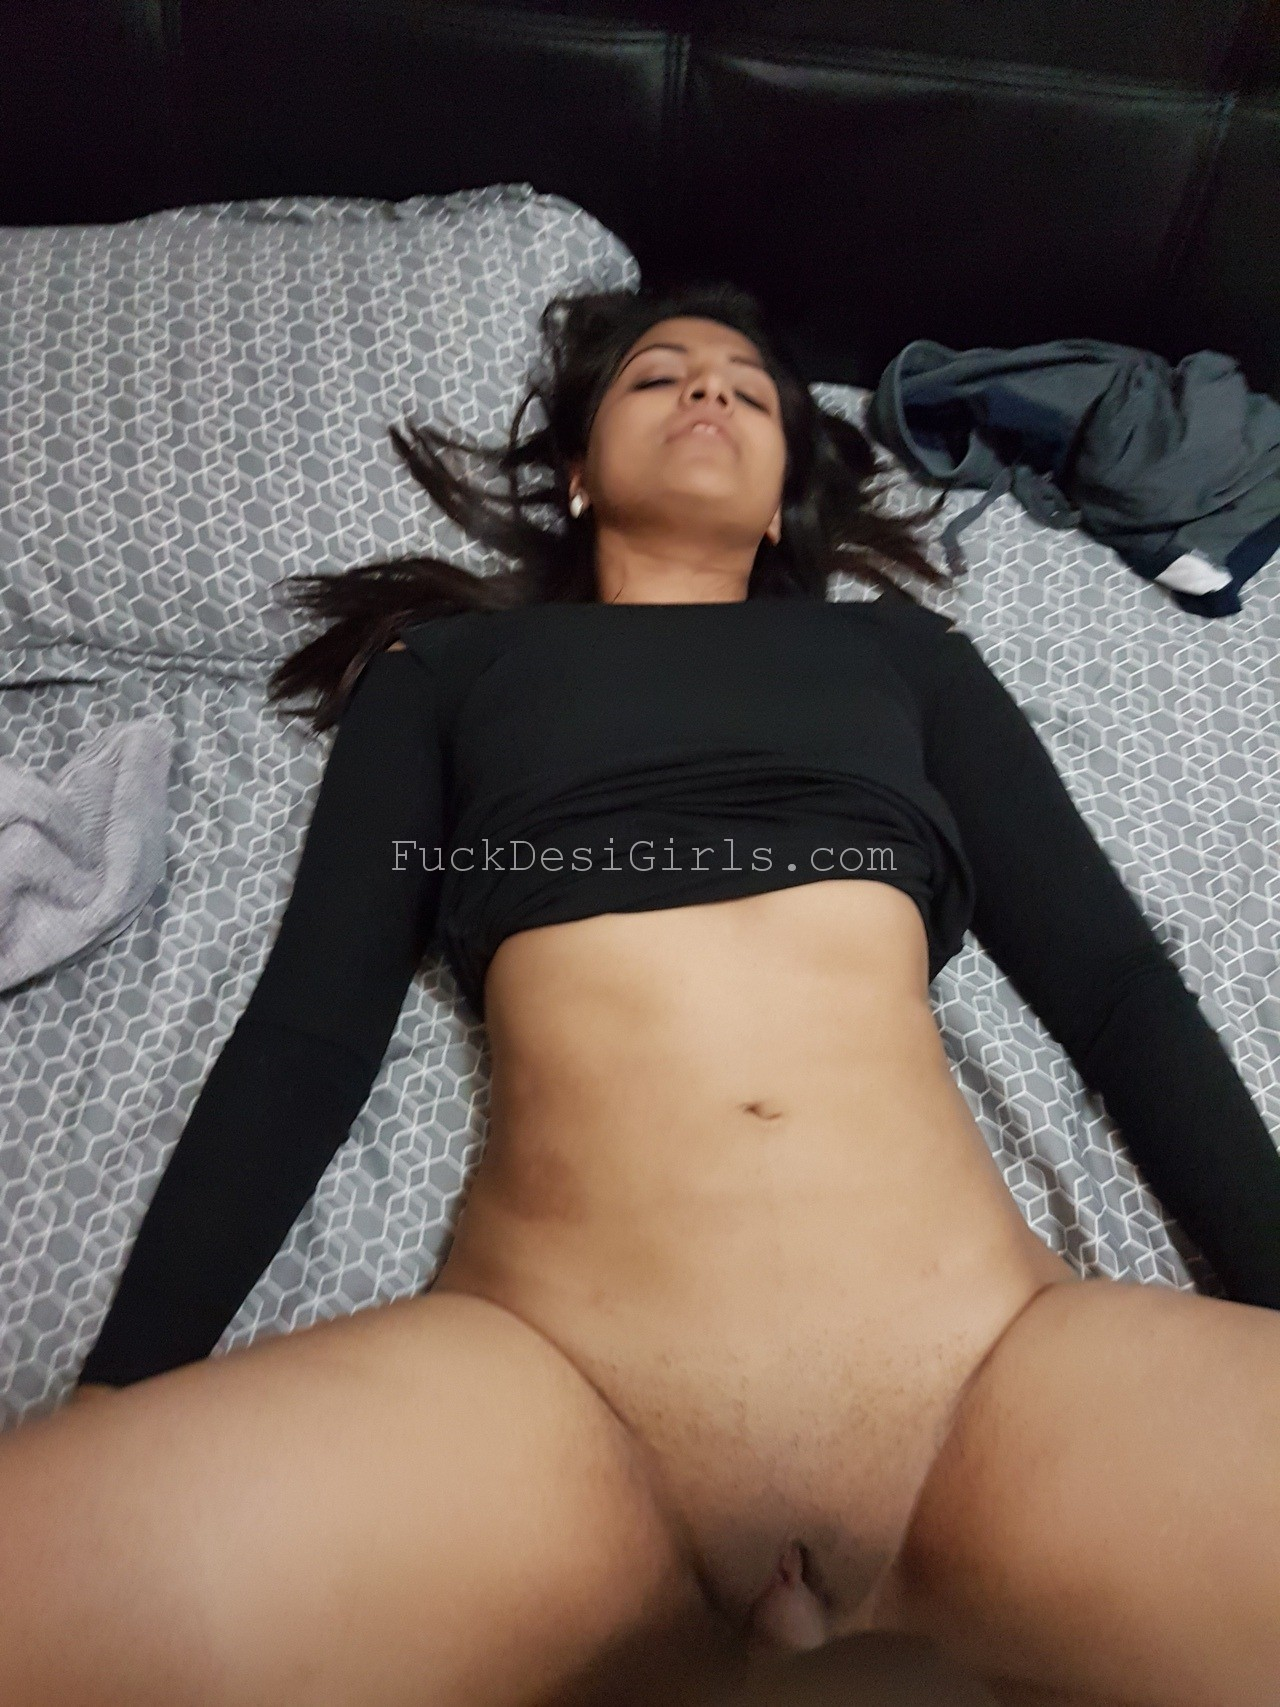 Guys first pussy videos